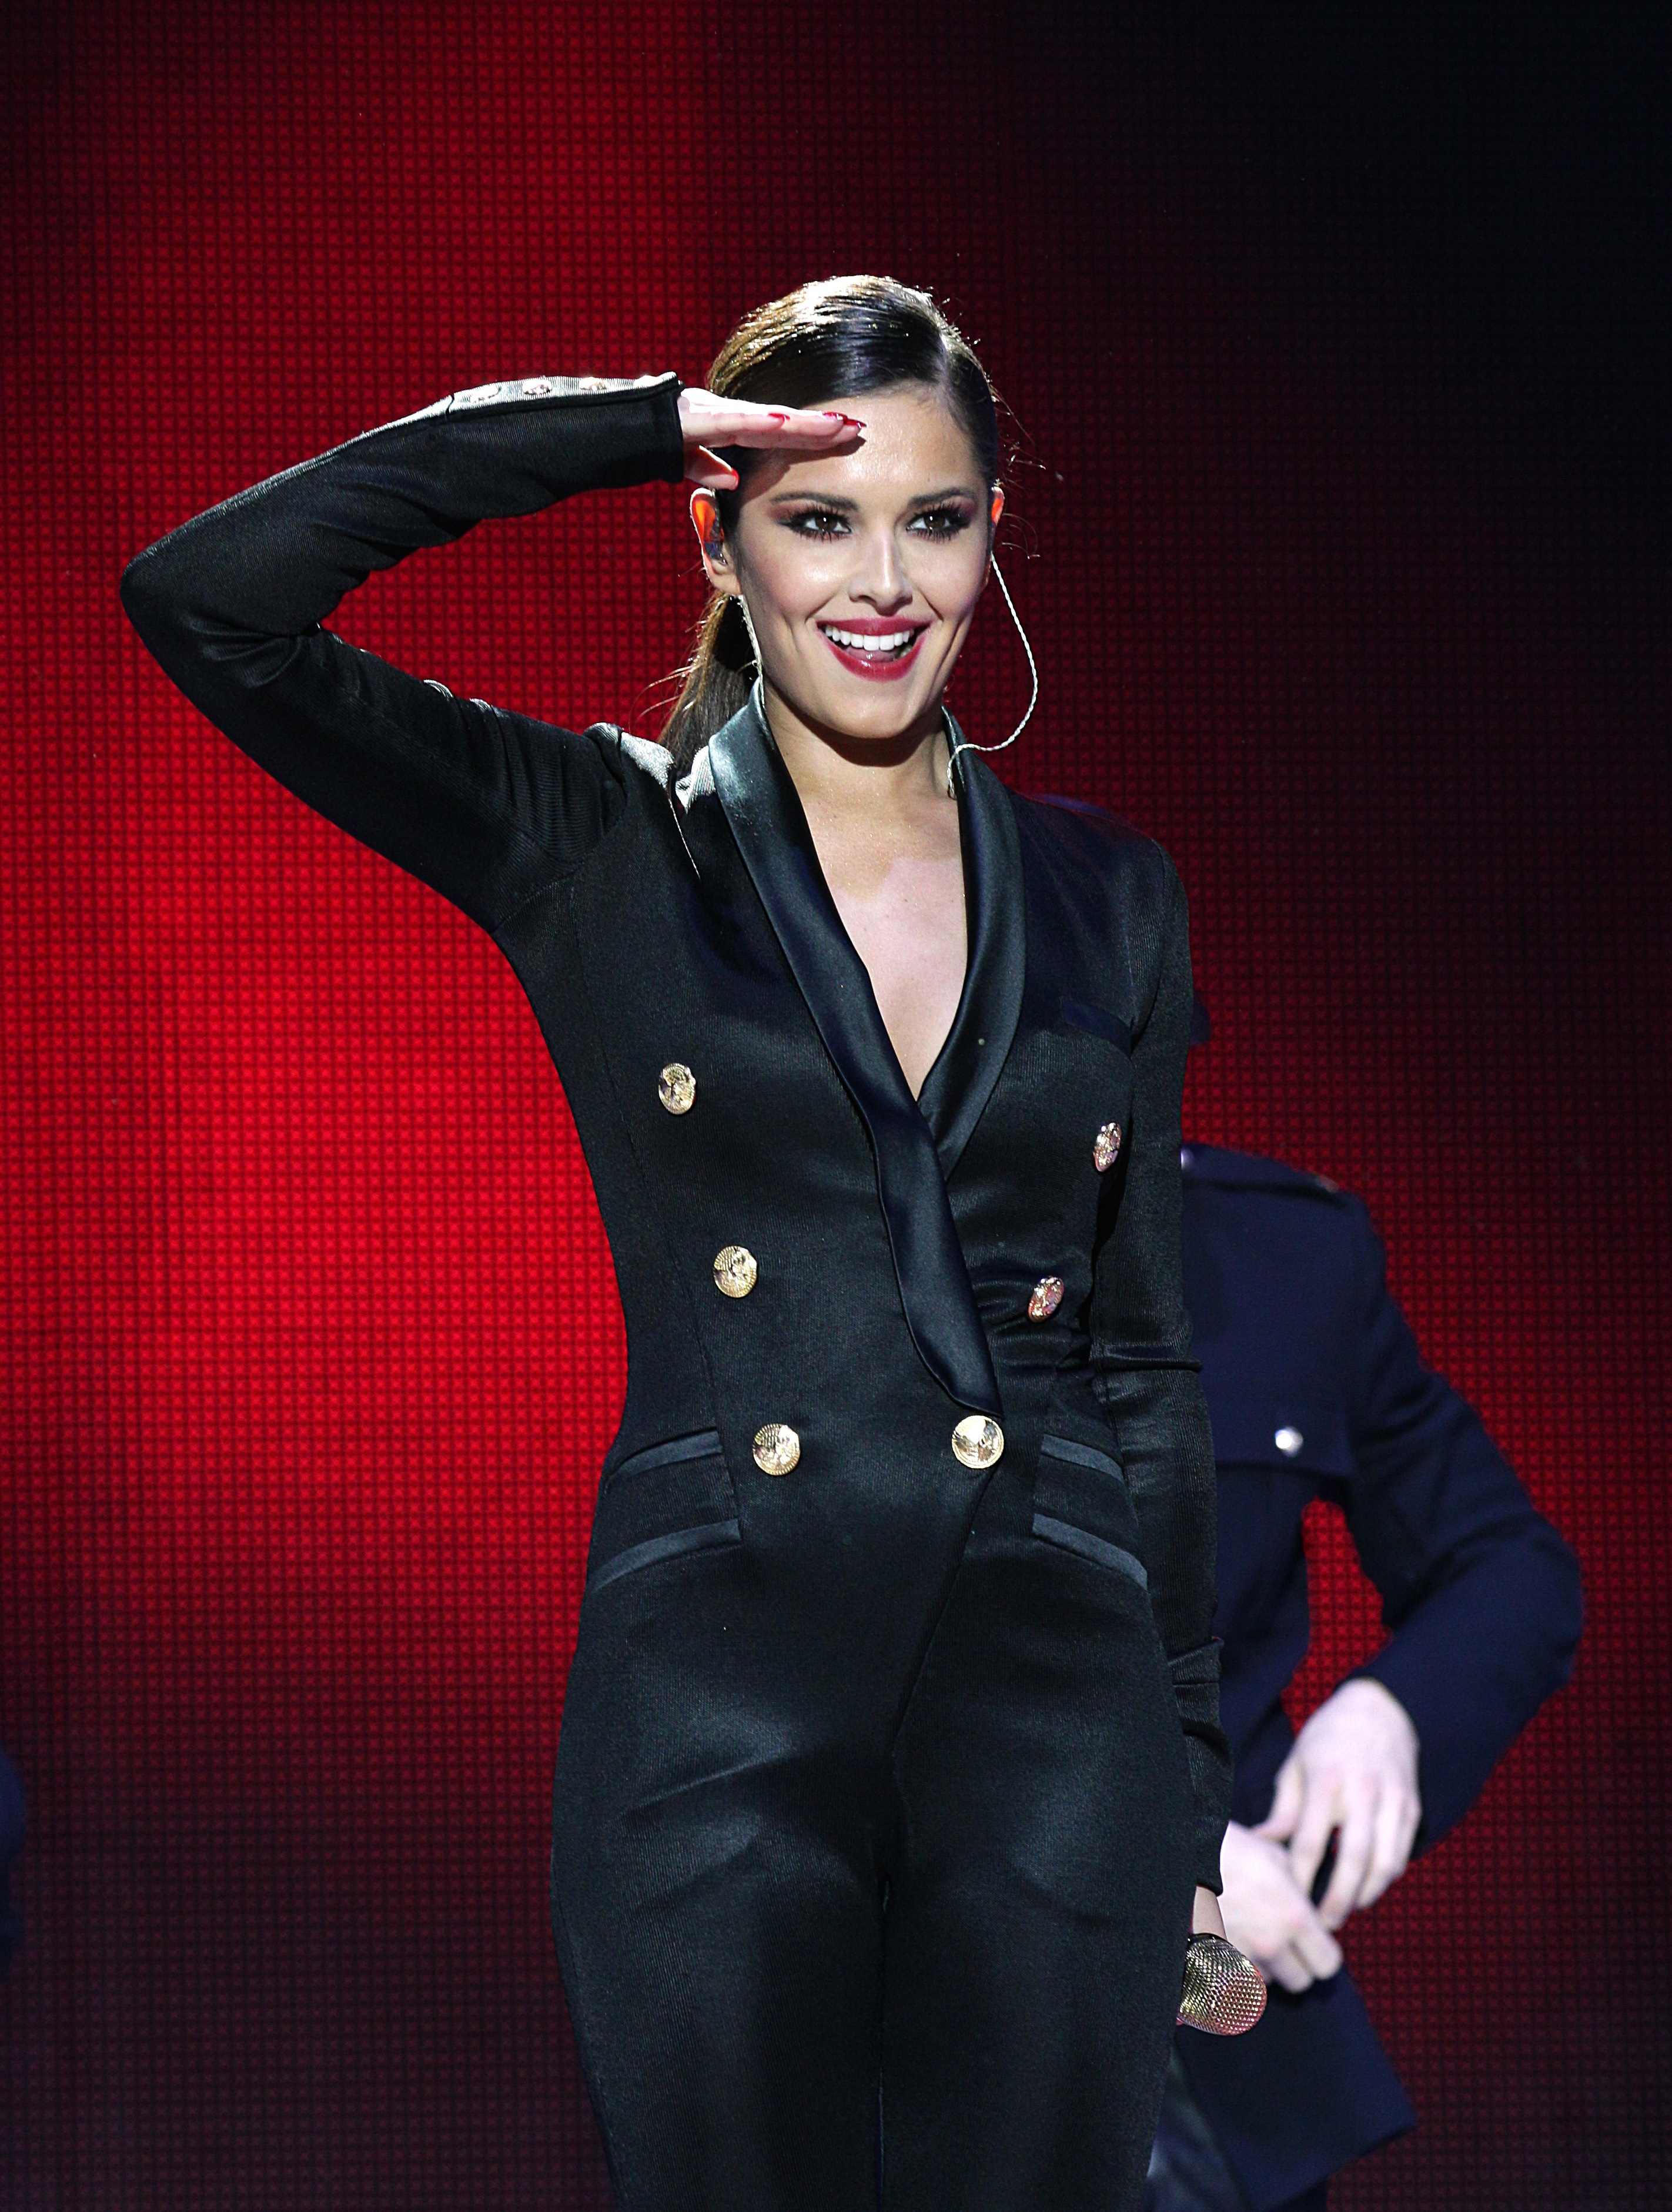 Cheryl Cole on stage during the 2012 Capital FM Jingle Bell Ball at the O2 Arena, London.